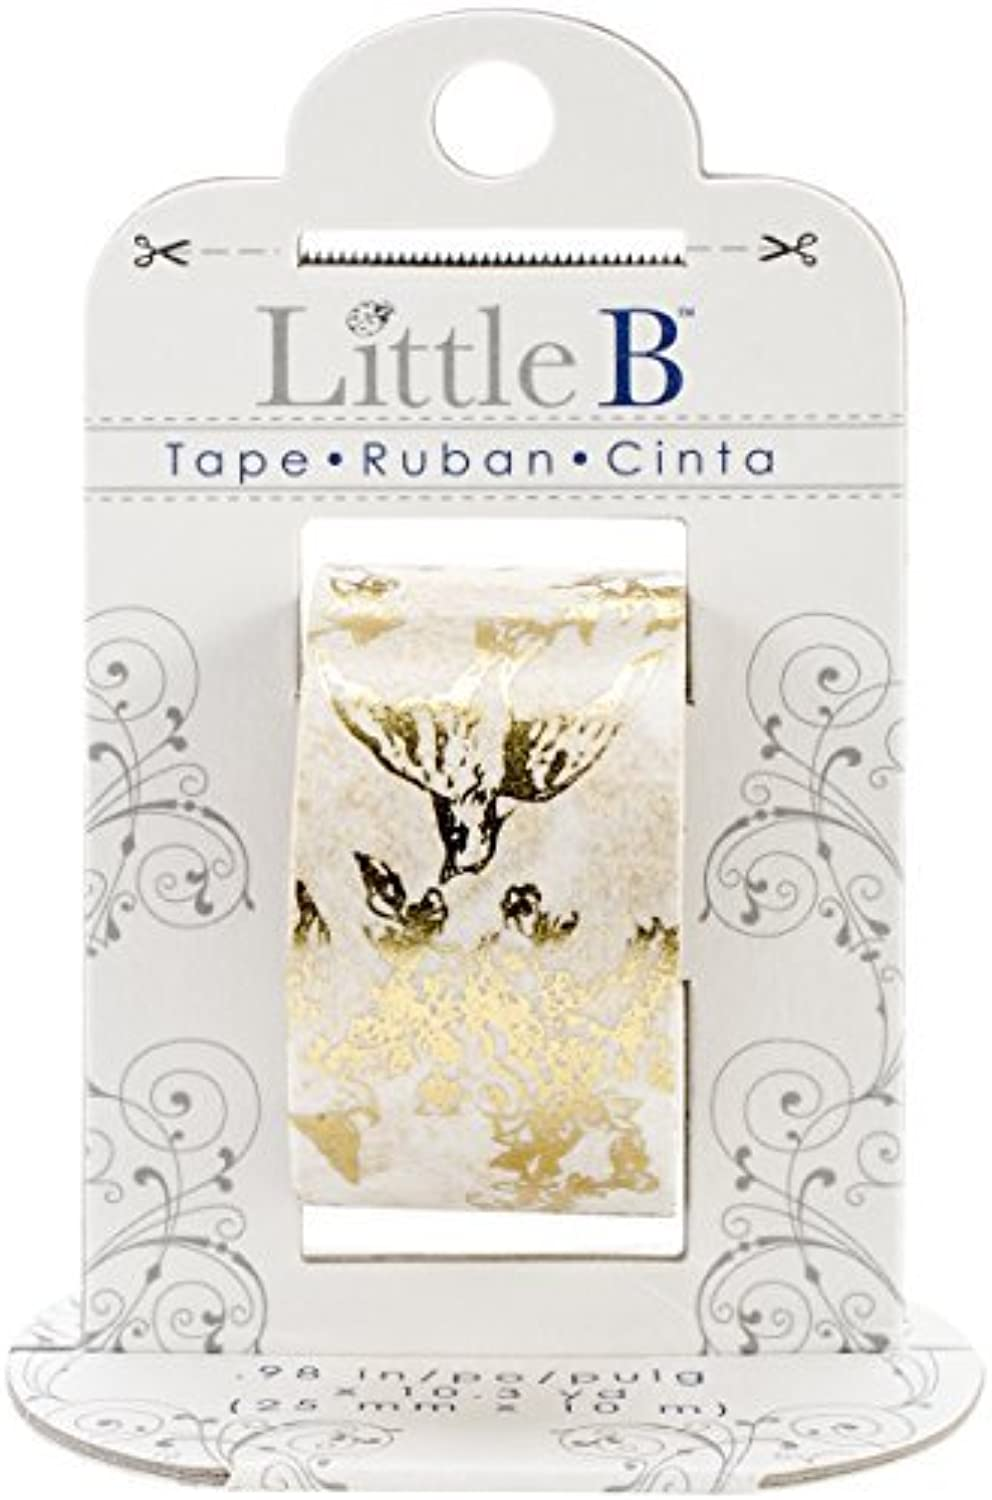 Little Little Little B 100443 Decorative Foil Paper Tape, Gold Toile by Little B B01KB6Y2JC | Preiszugeständnisse